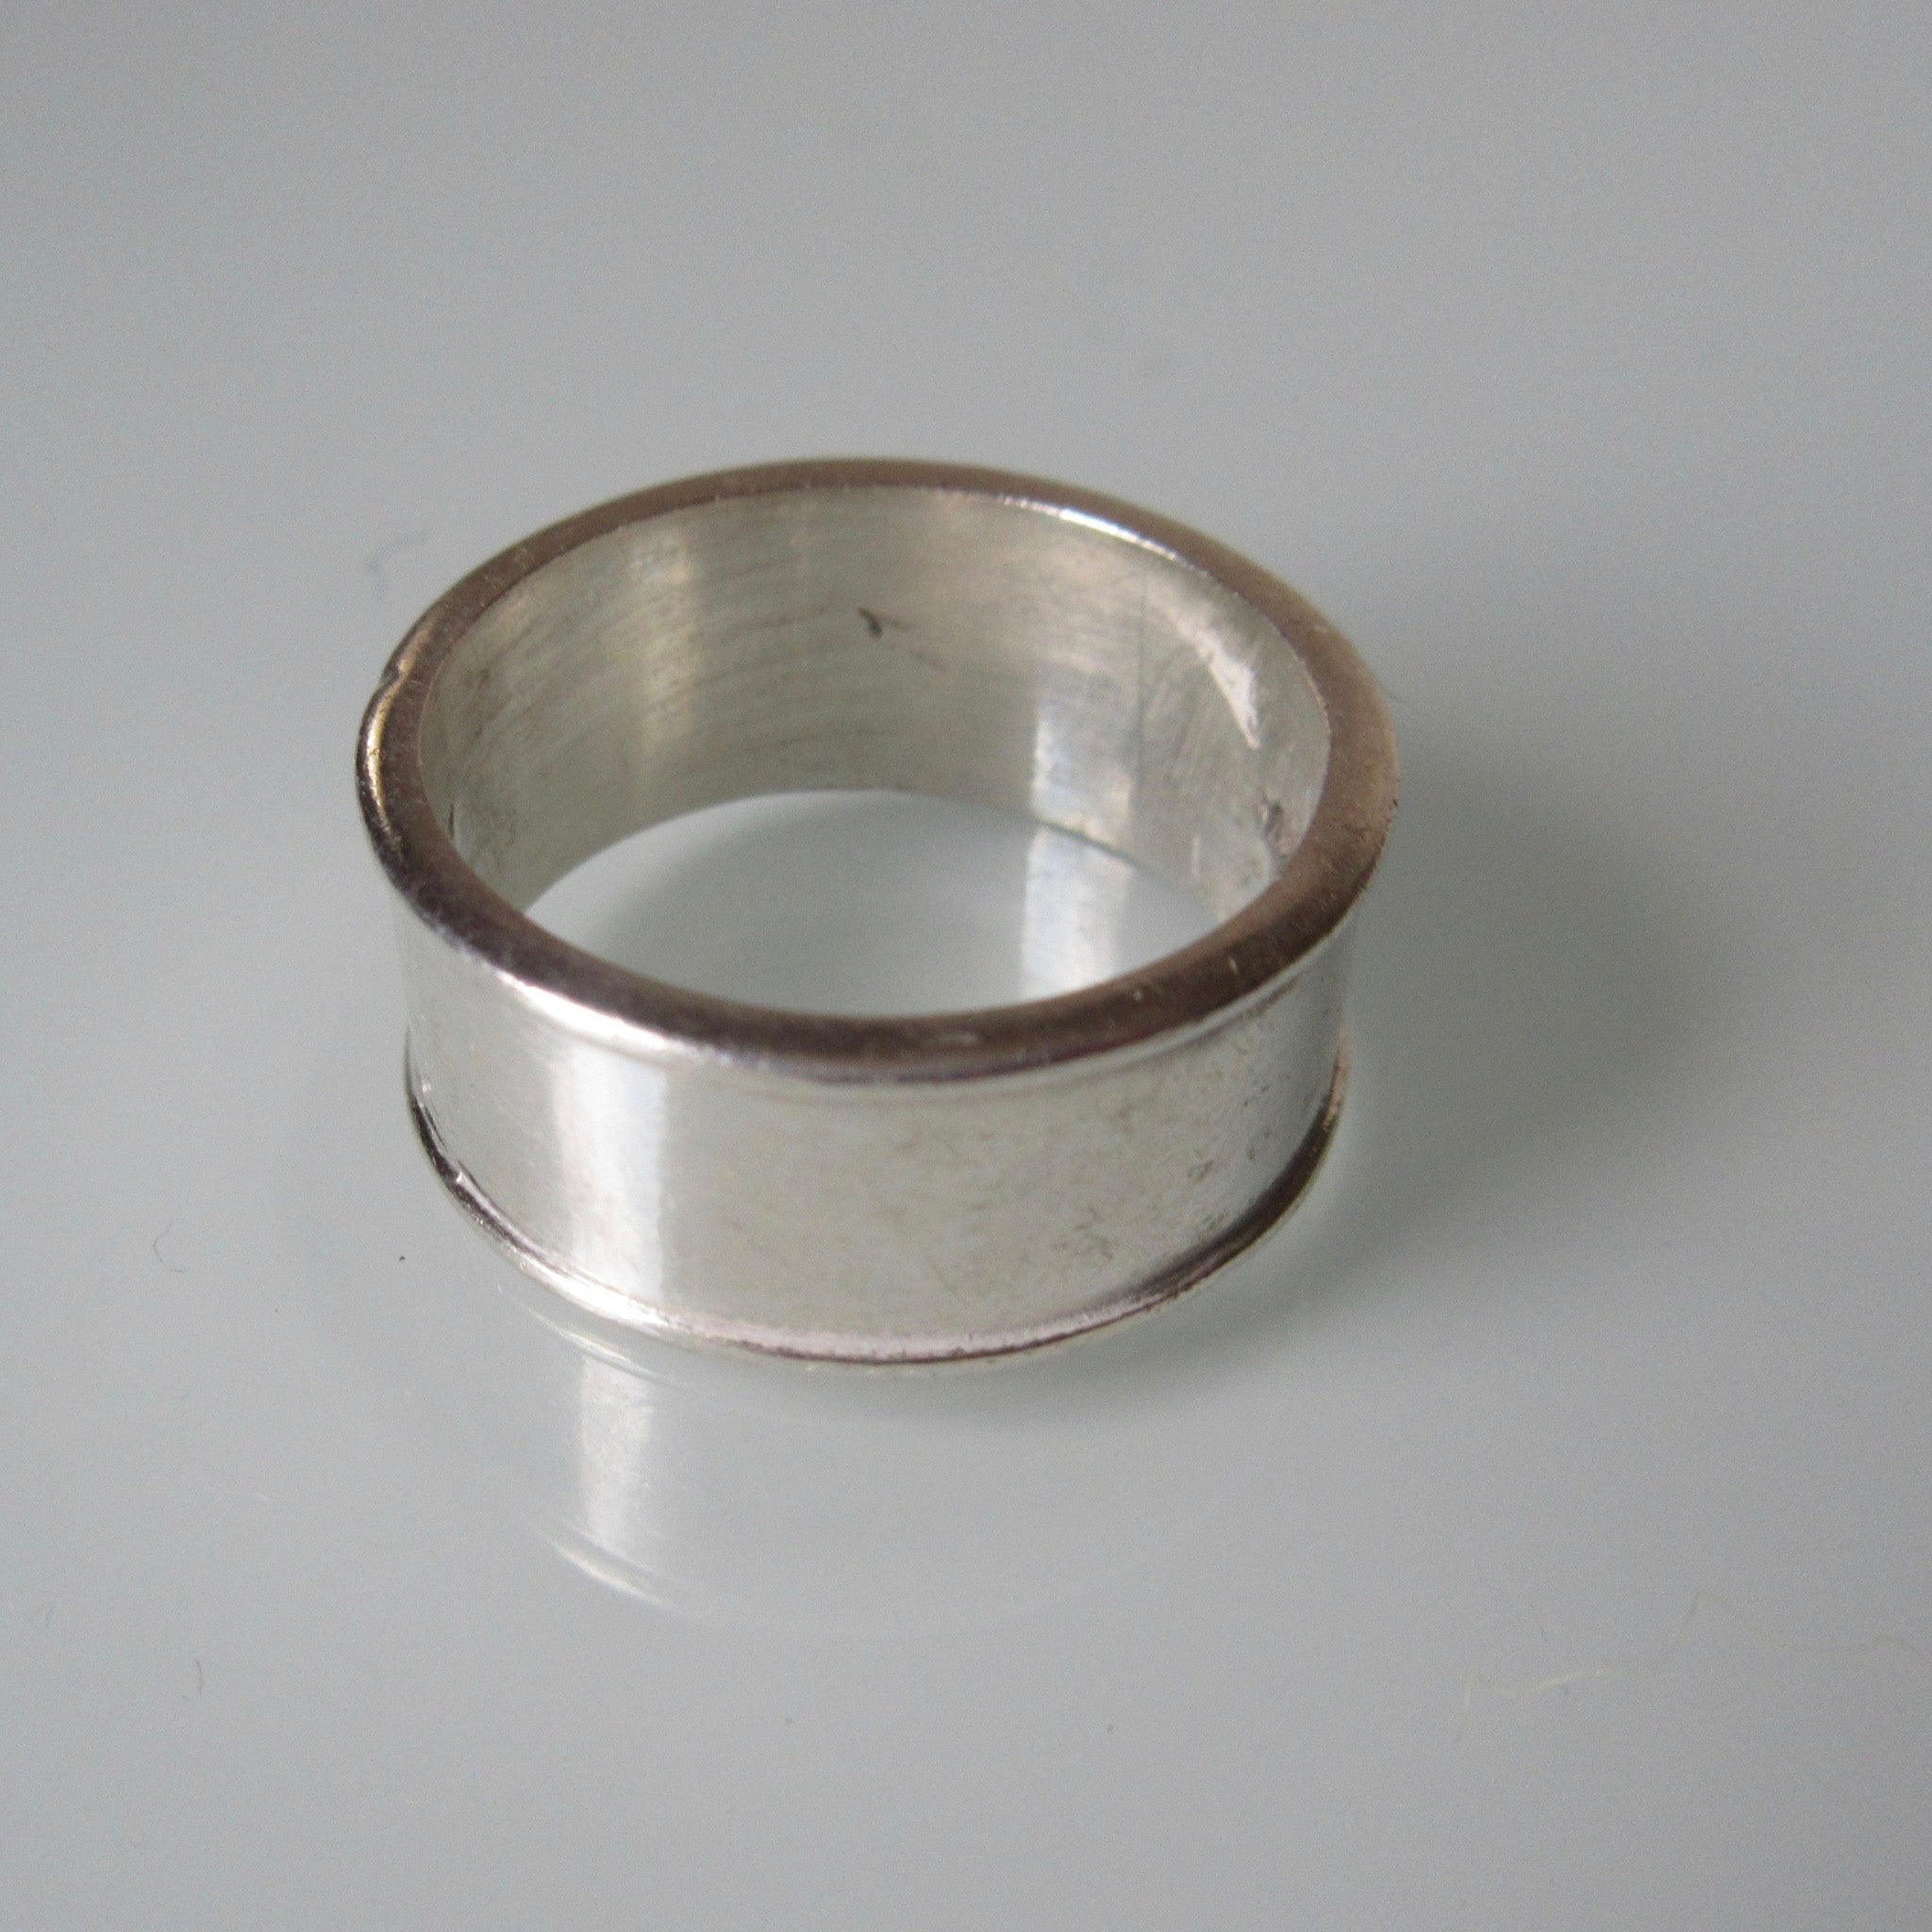 Vintage Sterling Silver Band Ring - Edge Rim